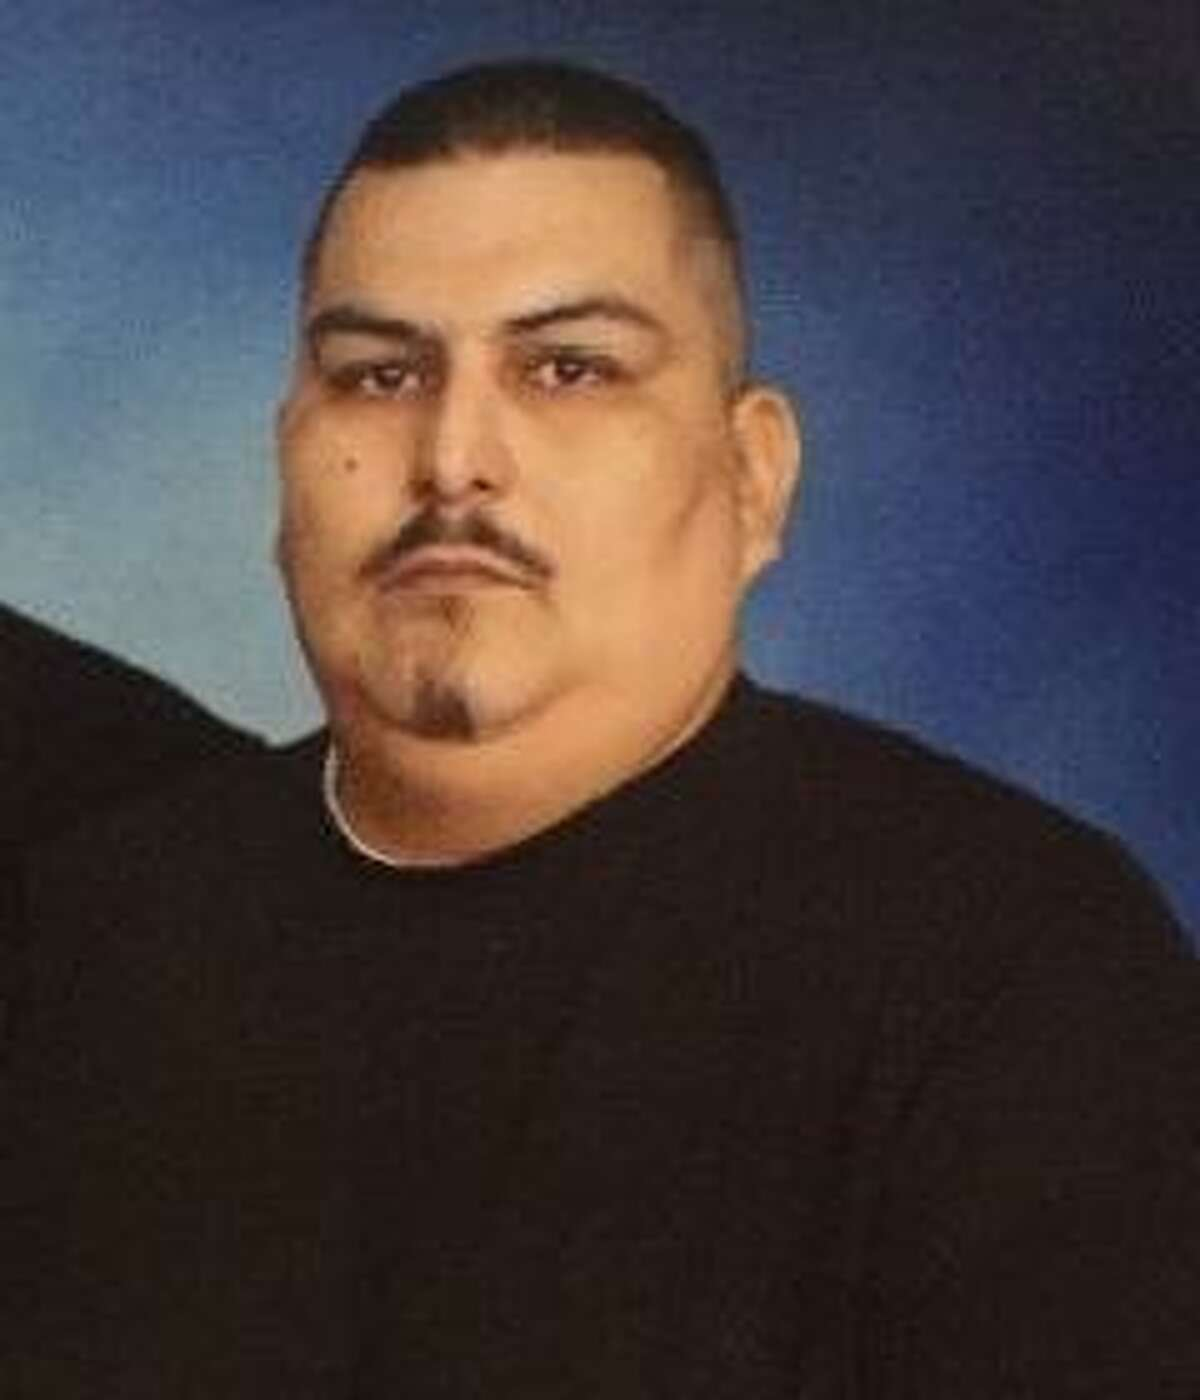 Isidro Zarate was killed Friday afternoon when he tried to stop a man from allegedly beating his female companion.